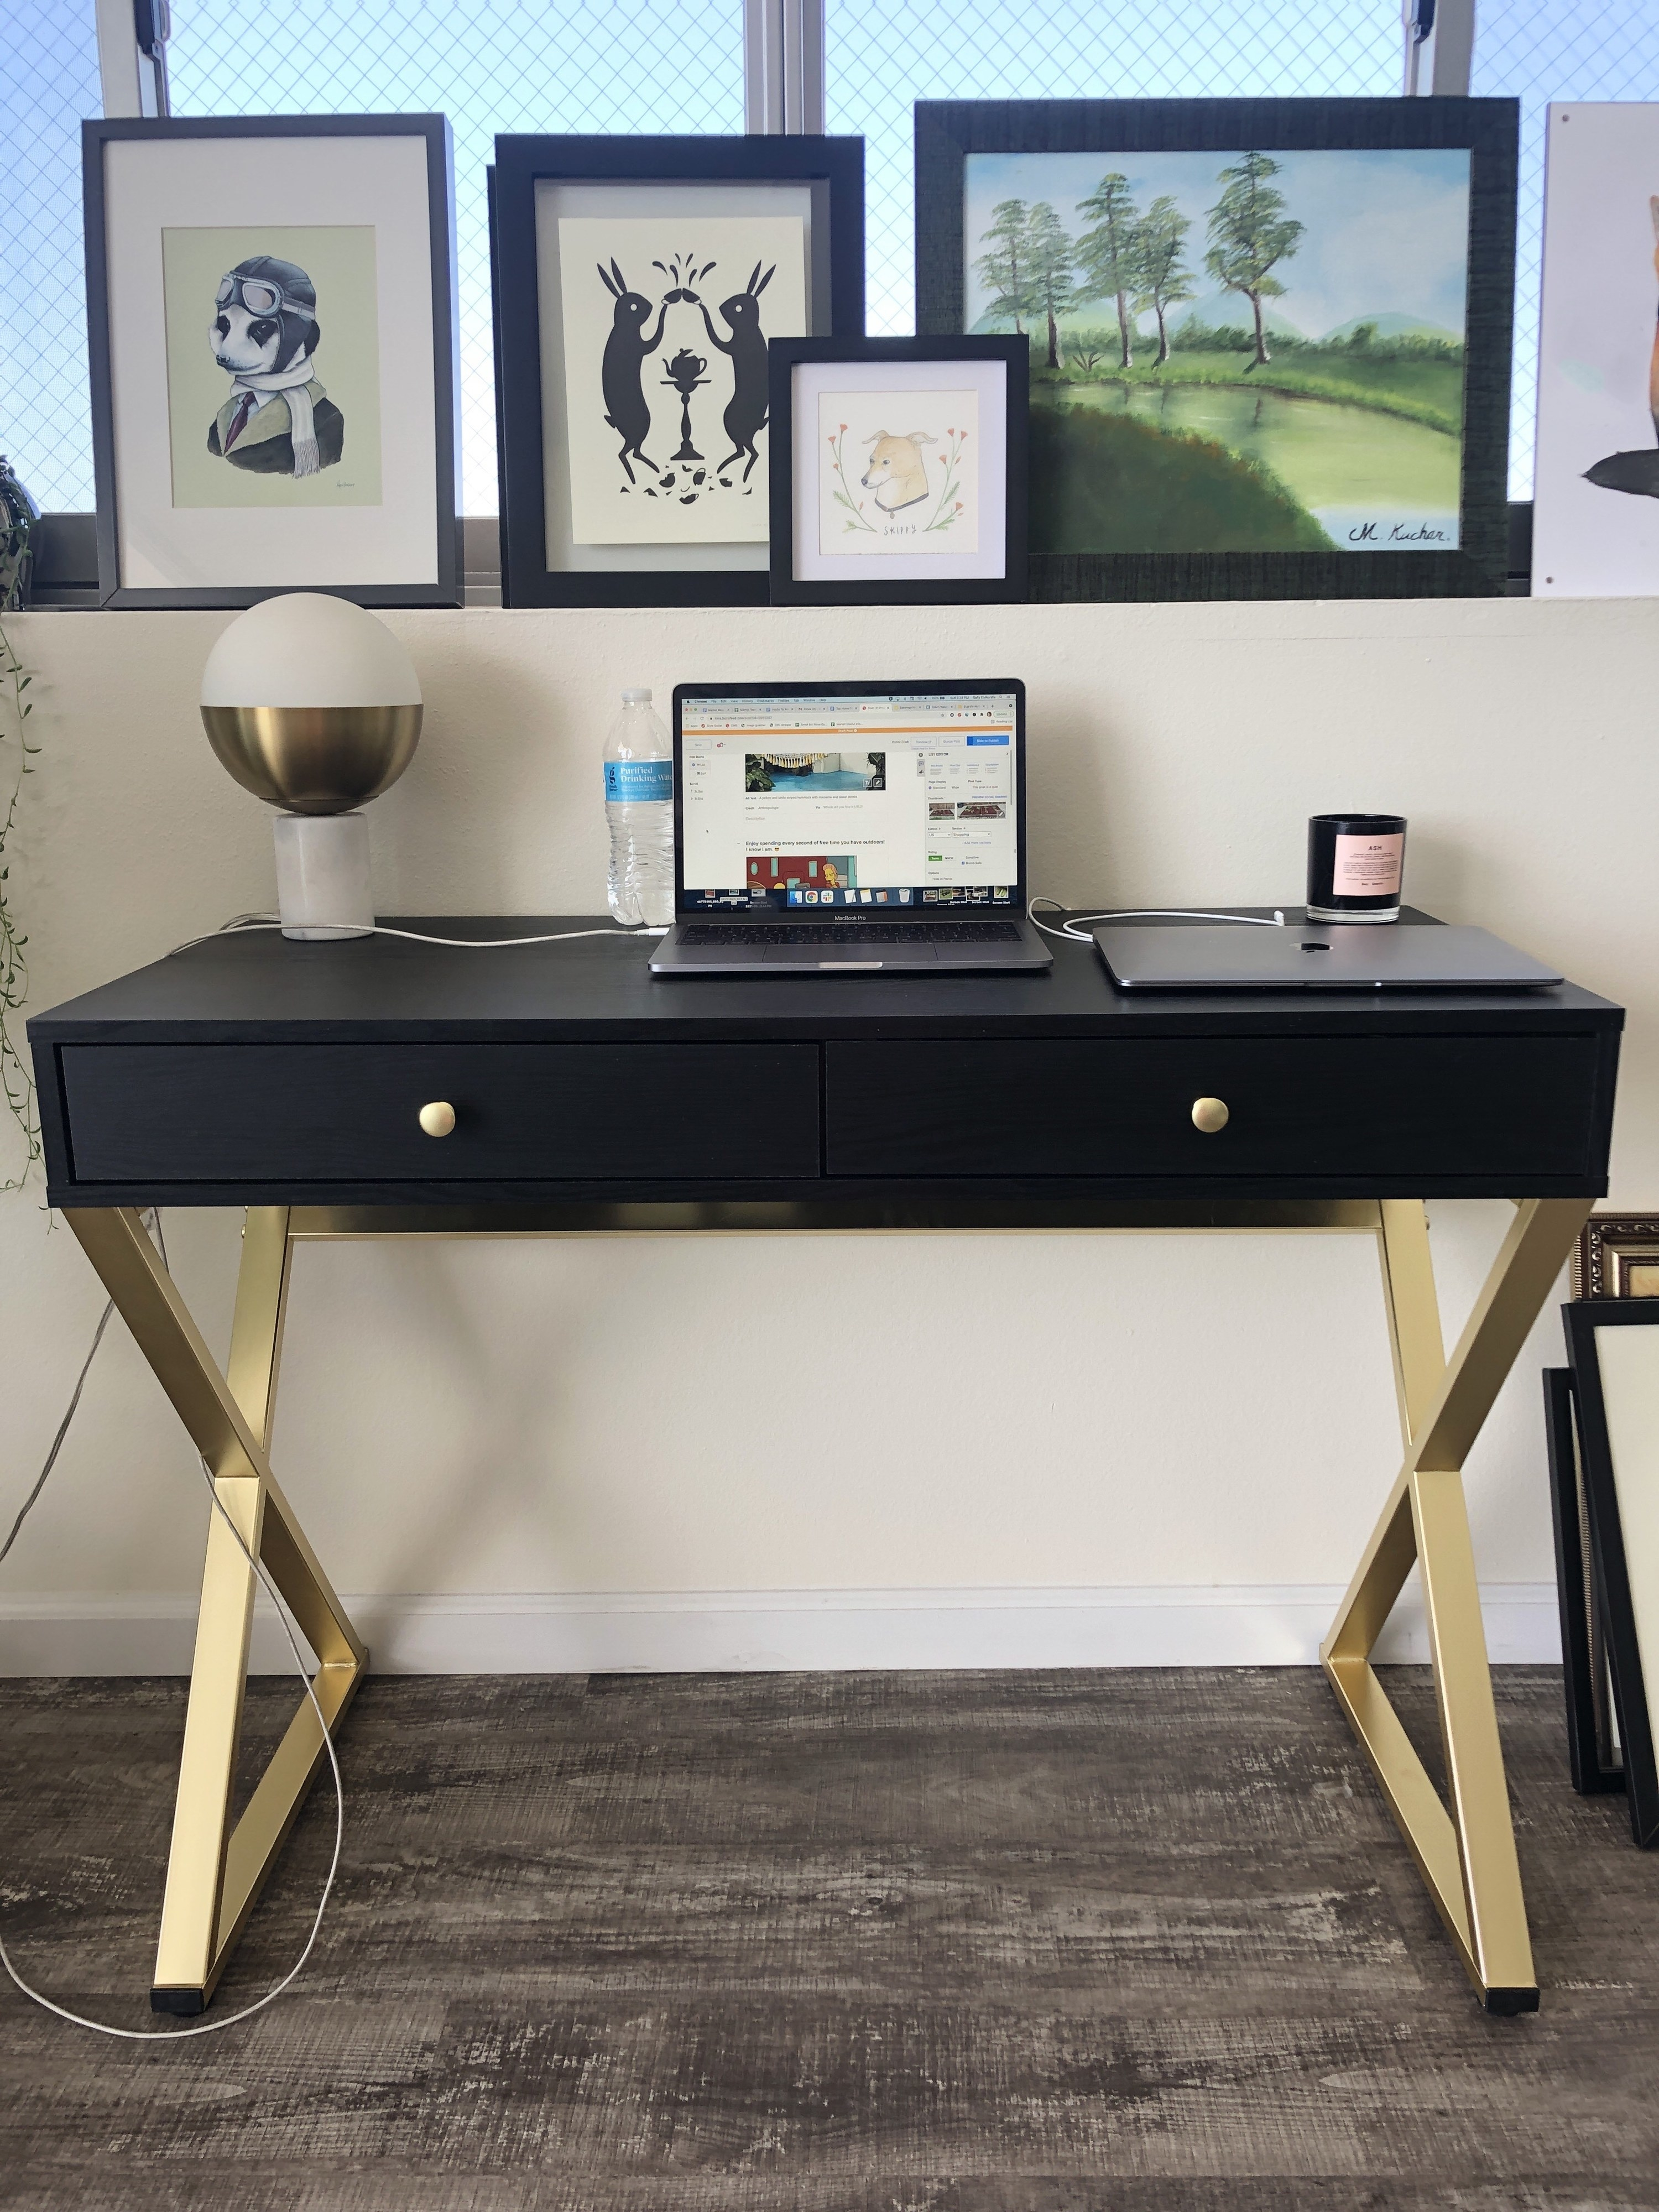 The desk is displayed against a wall